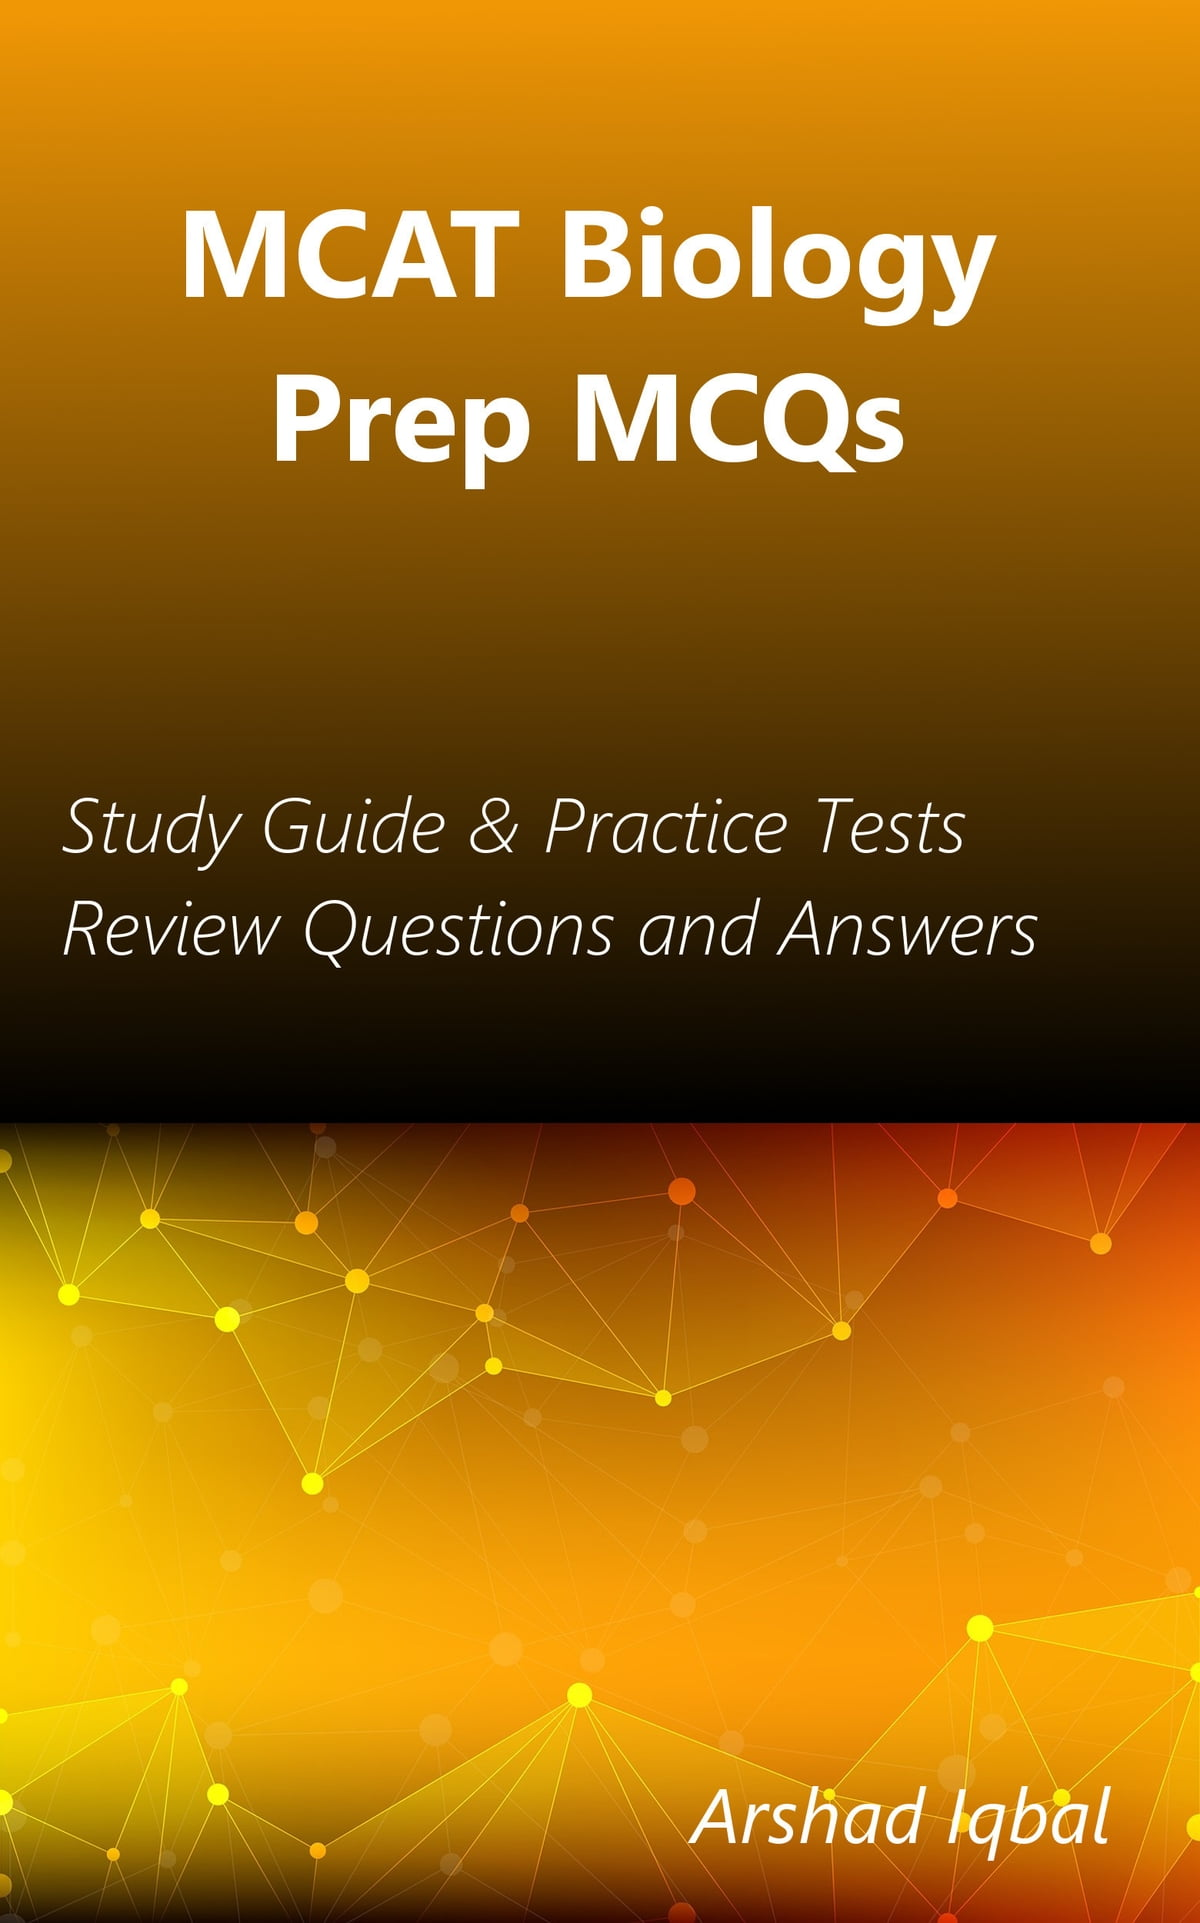 MCAT Biology Prep MCQs: Study Guide & Practice Tests Review Questions and  Answers eBook by Arshad Iqbal - 9781311316622 | Rakuten Kobo